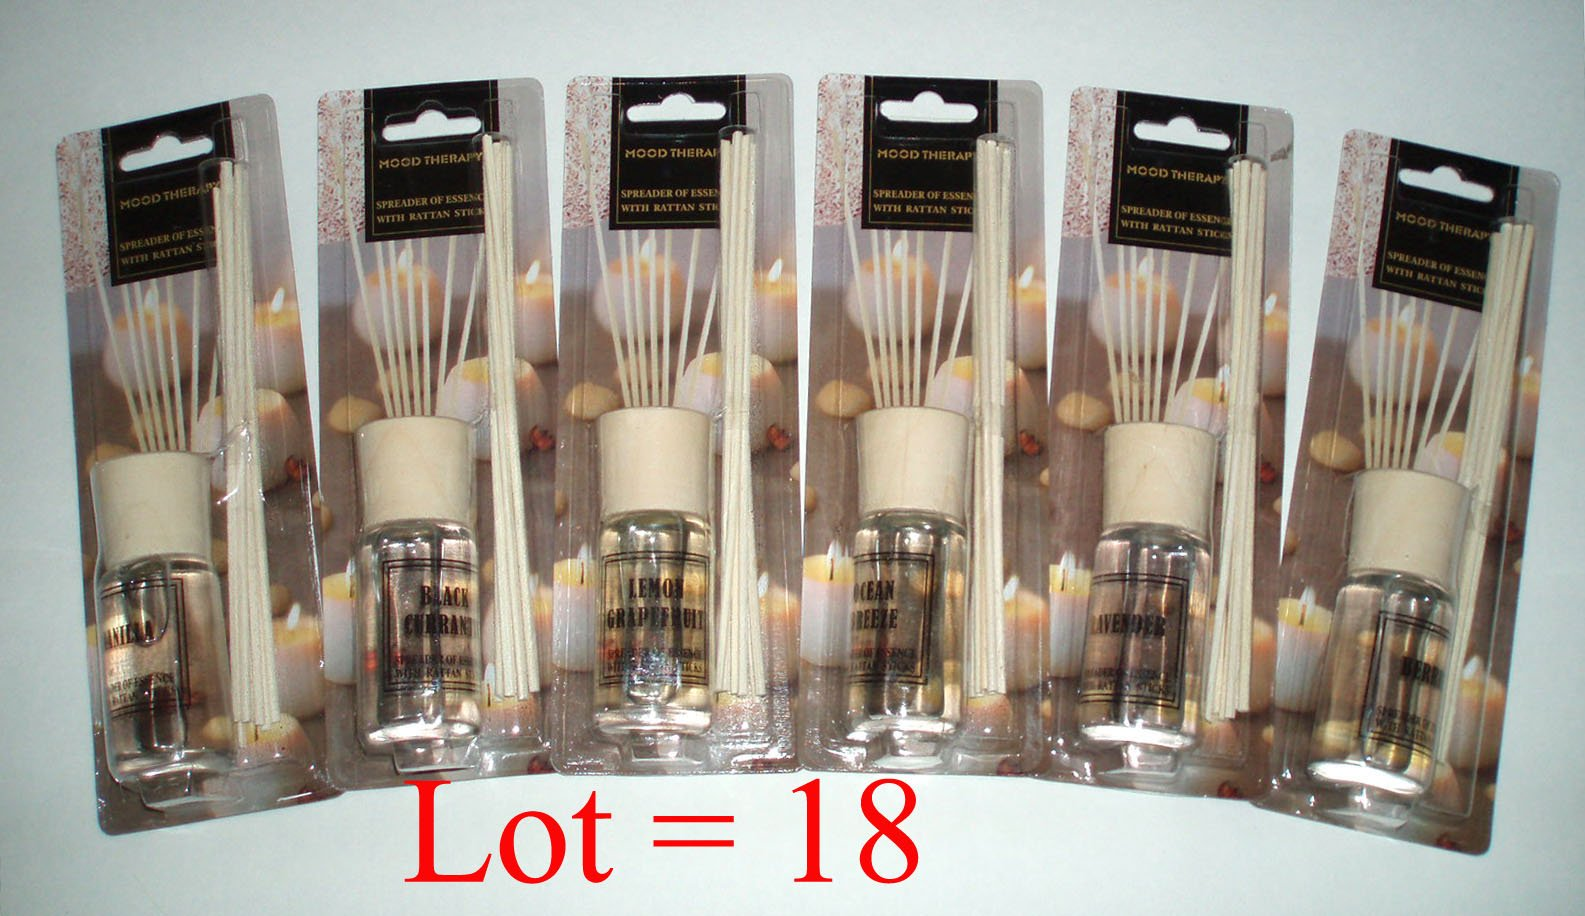 Mood Therapy 18 Sets Fragrance Oil Reed Diffuser Sets Wholesale Lot (18 x 1.2 oz) (Case of 18) by Mood Therapy (Image #1)